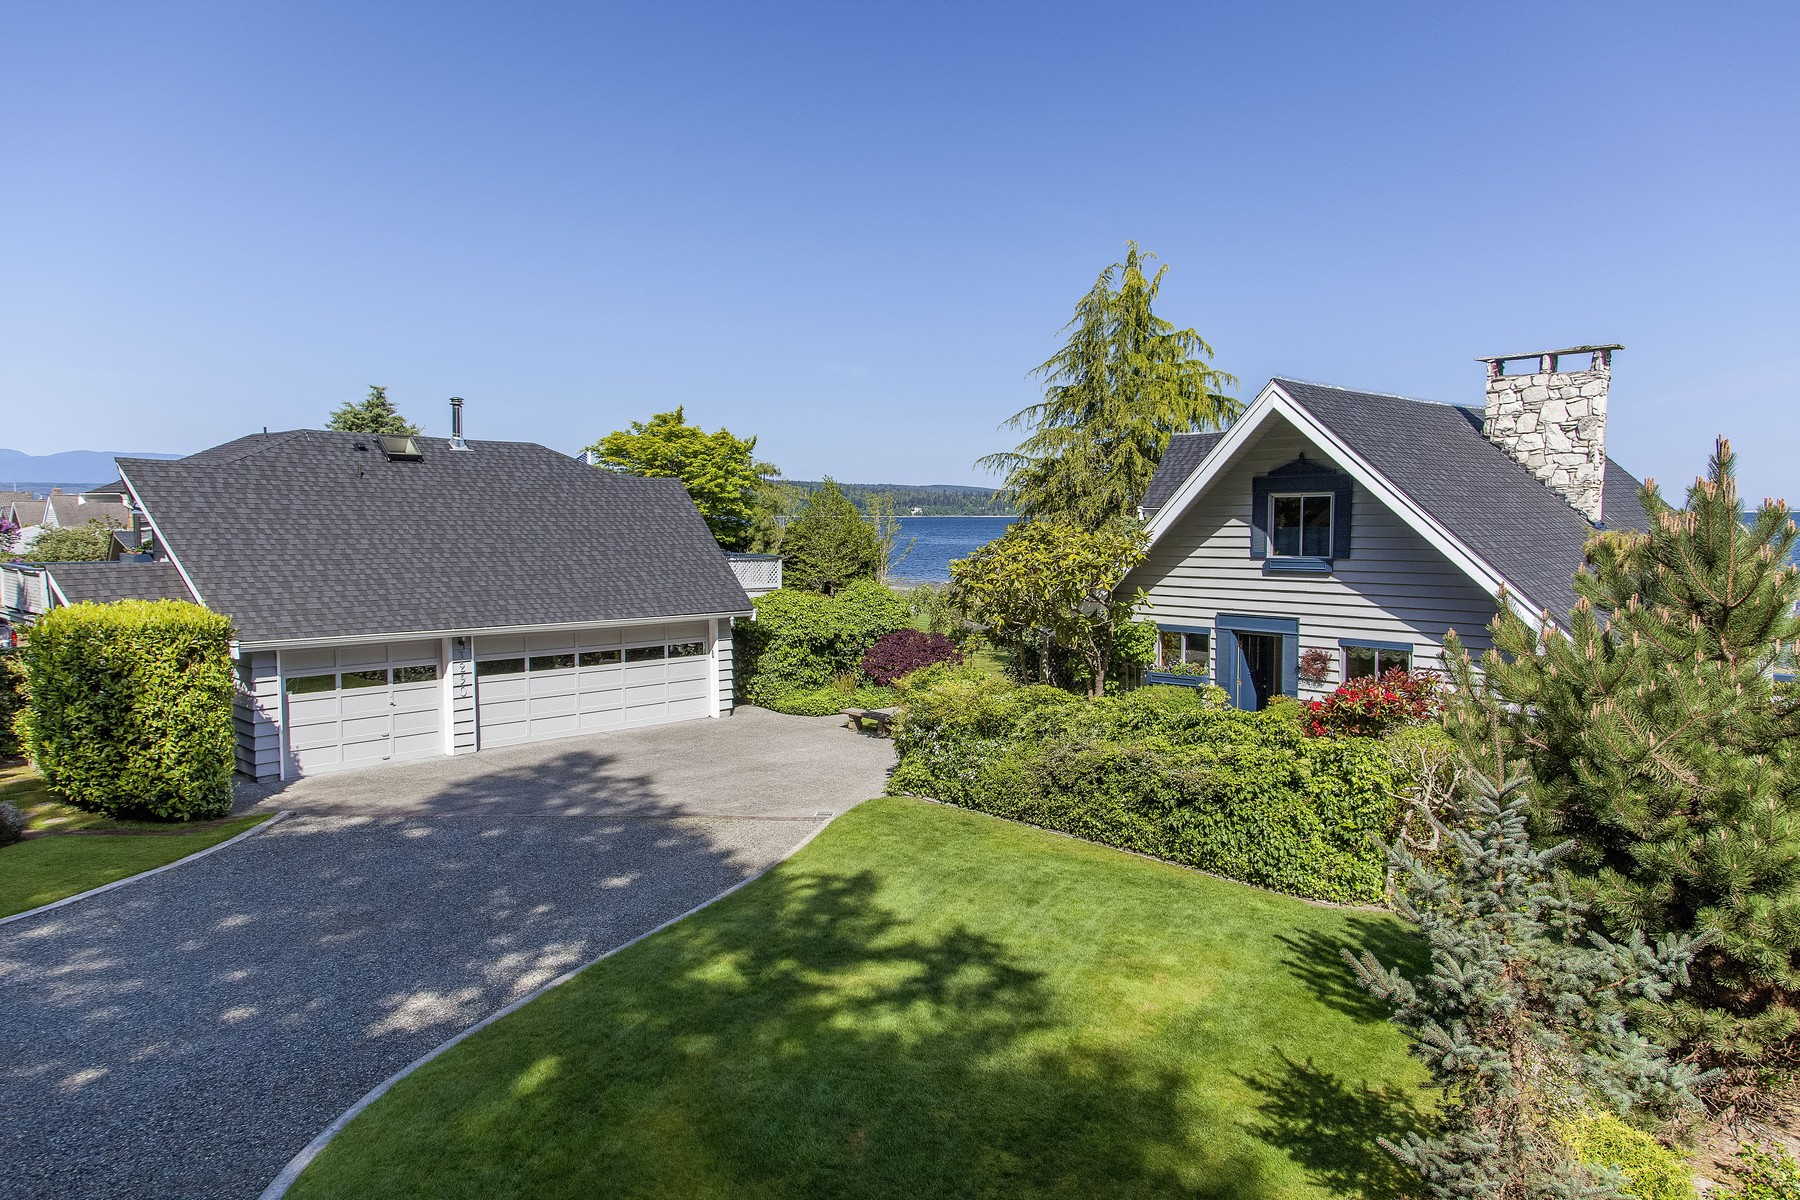 Single Family Home for Sale at Poulsbo Beach House 3290 Wheeler Street NE Poulsbo, Washington 98370 United States